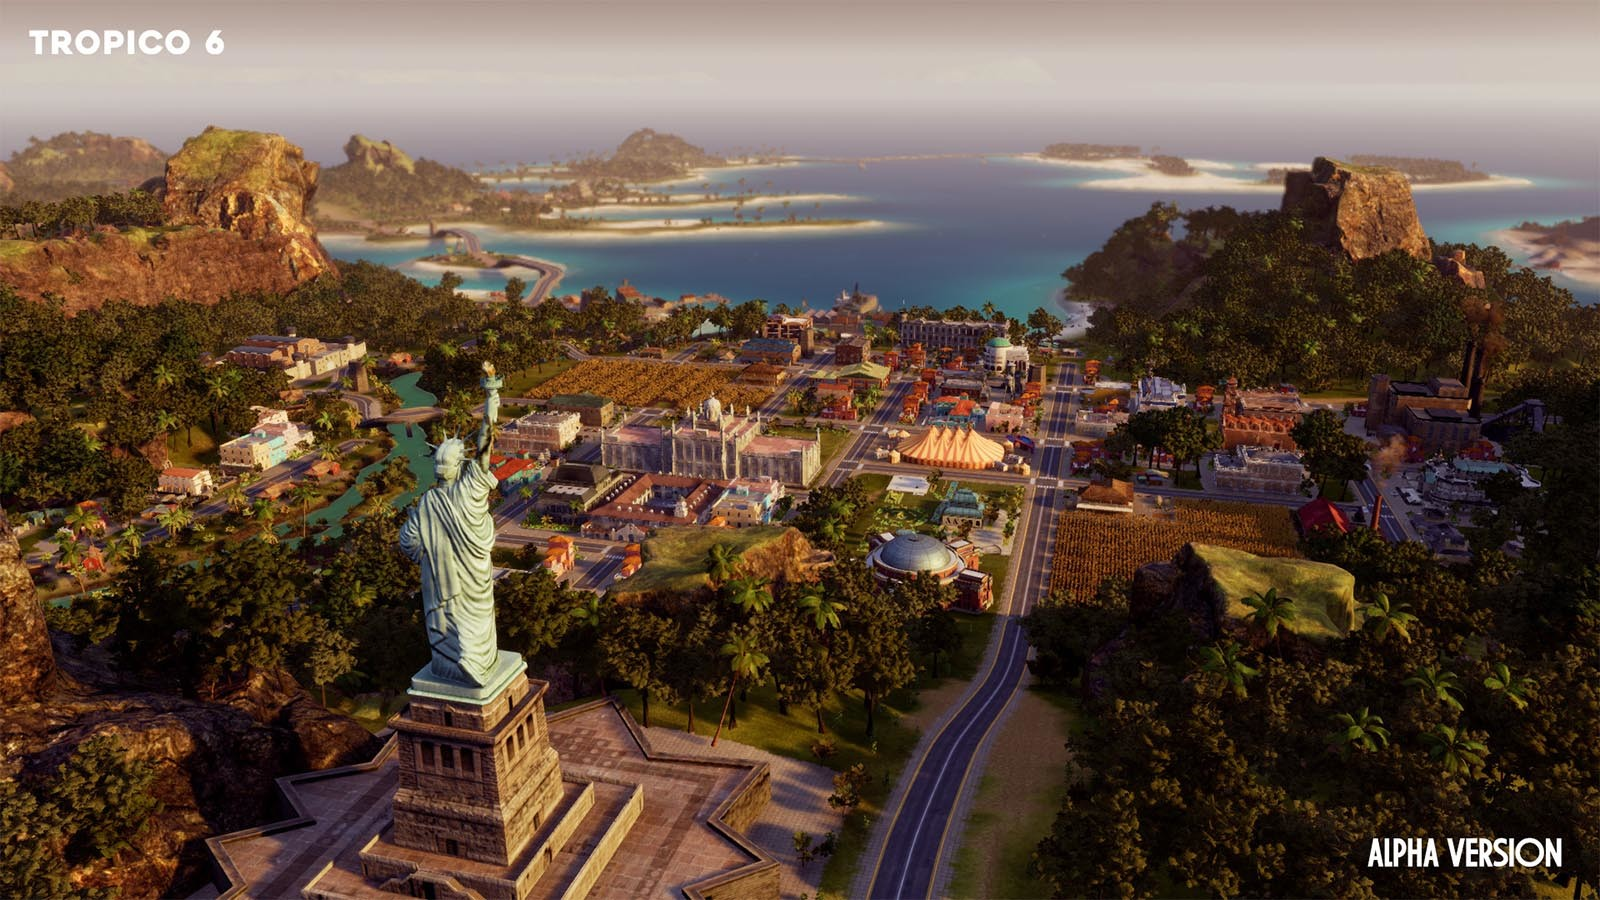 Tropico 6 [Steam CD Key] for PC and Linux - Buy now